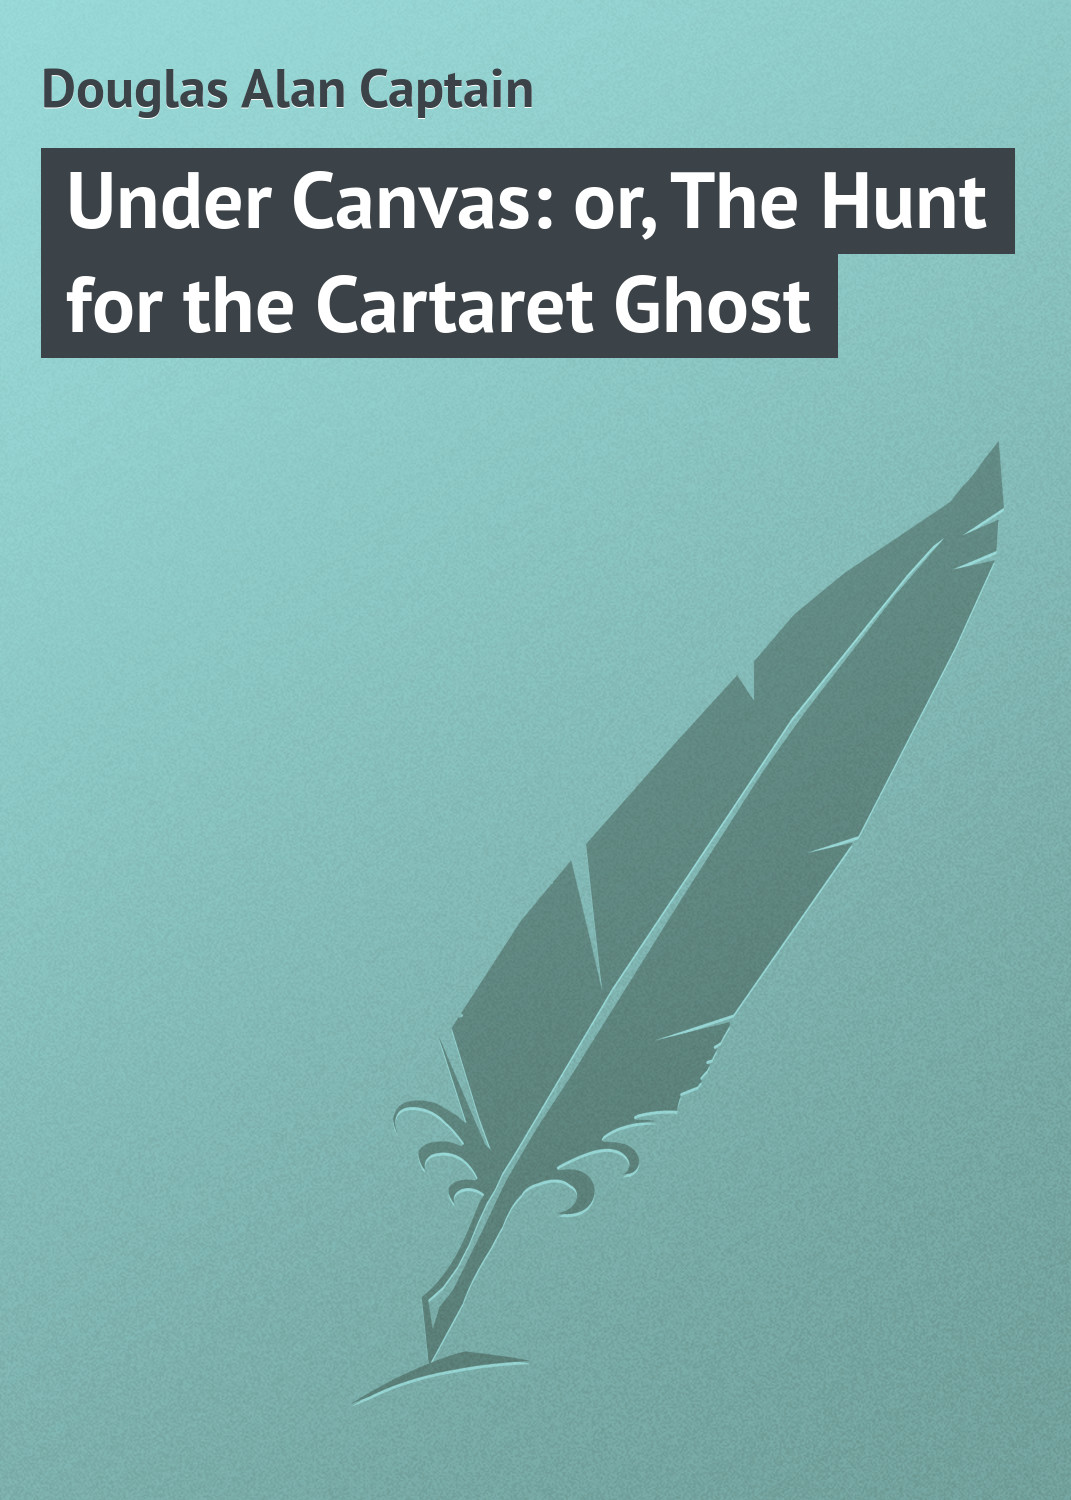 Douglas Alan Captain Under Canvas: or, The Hunt for the Cartaret Ghost